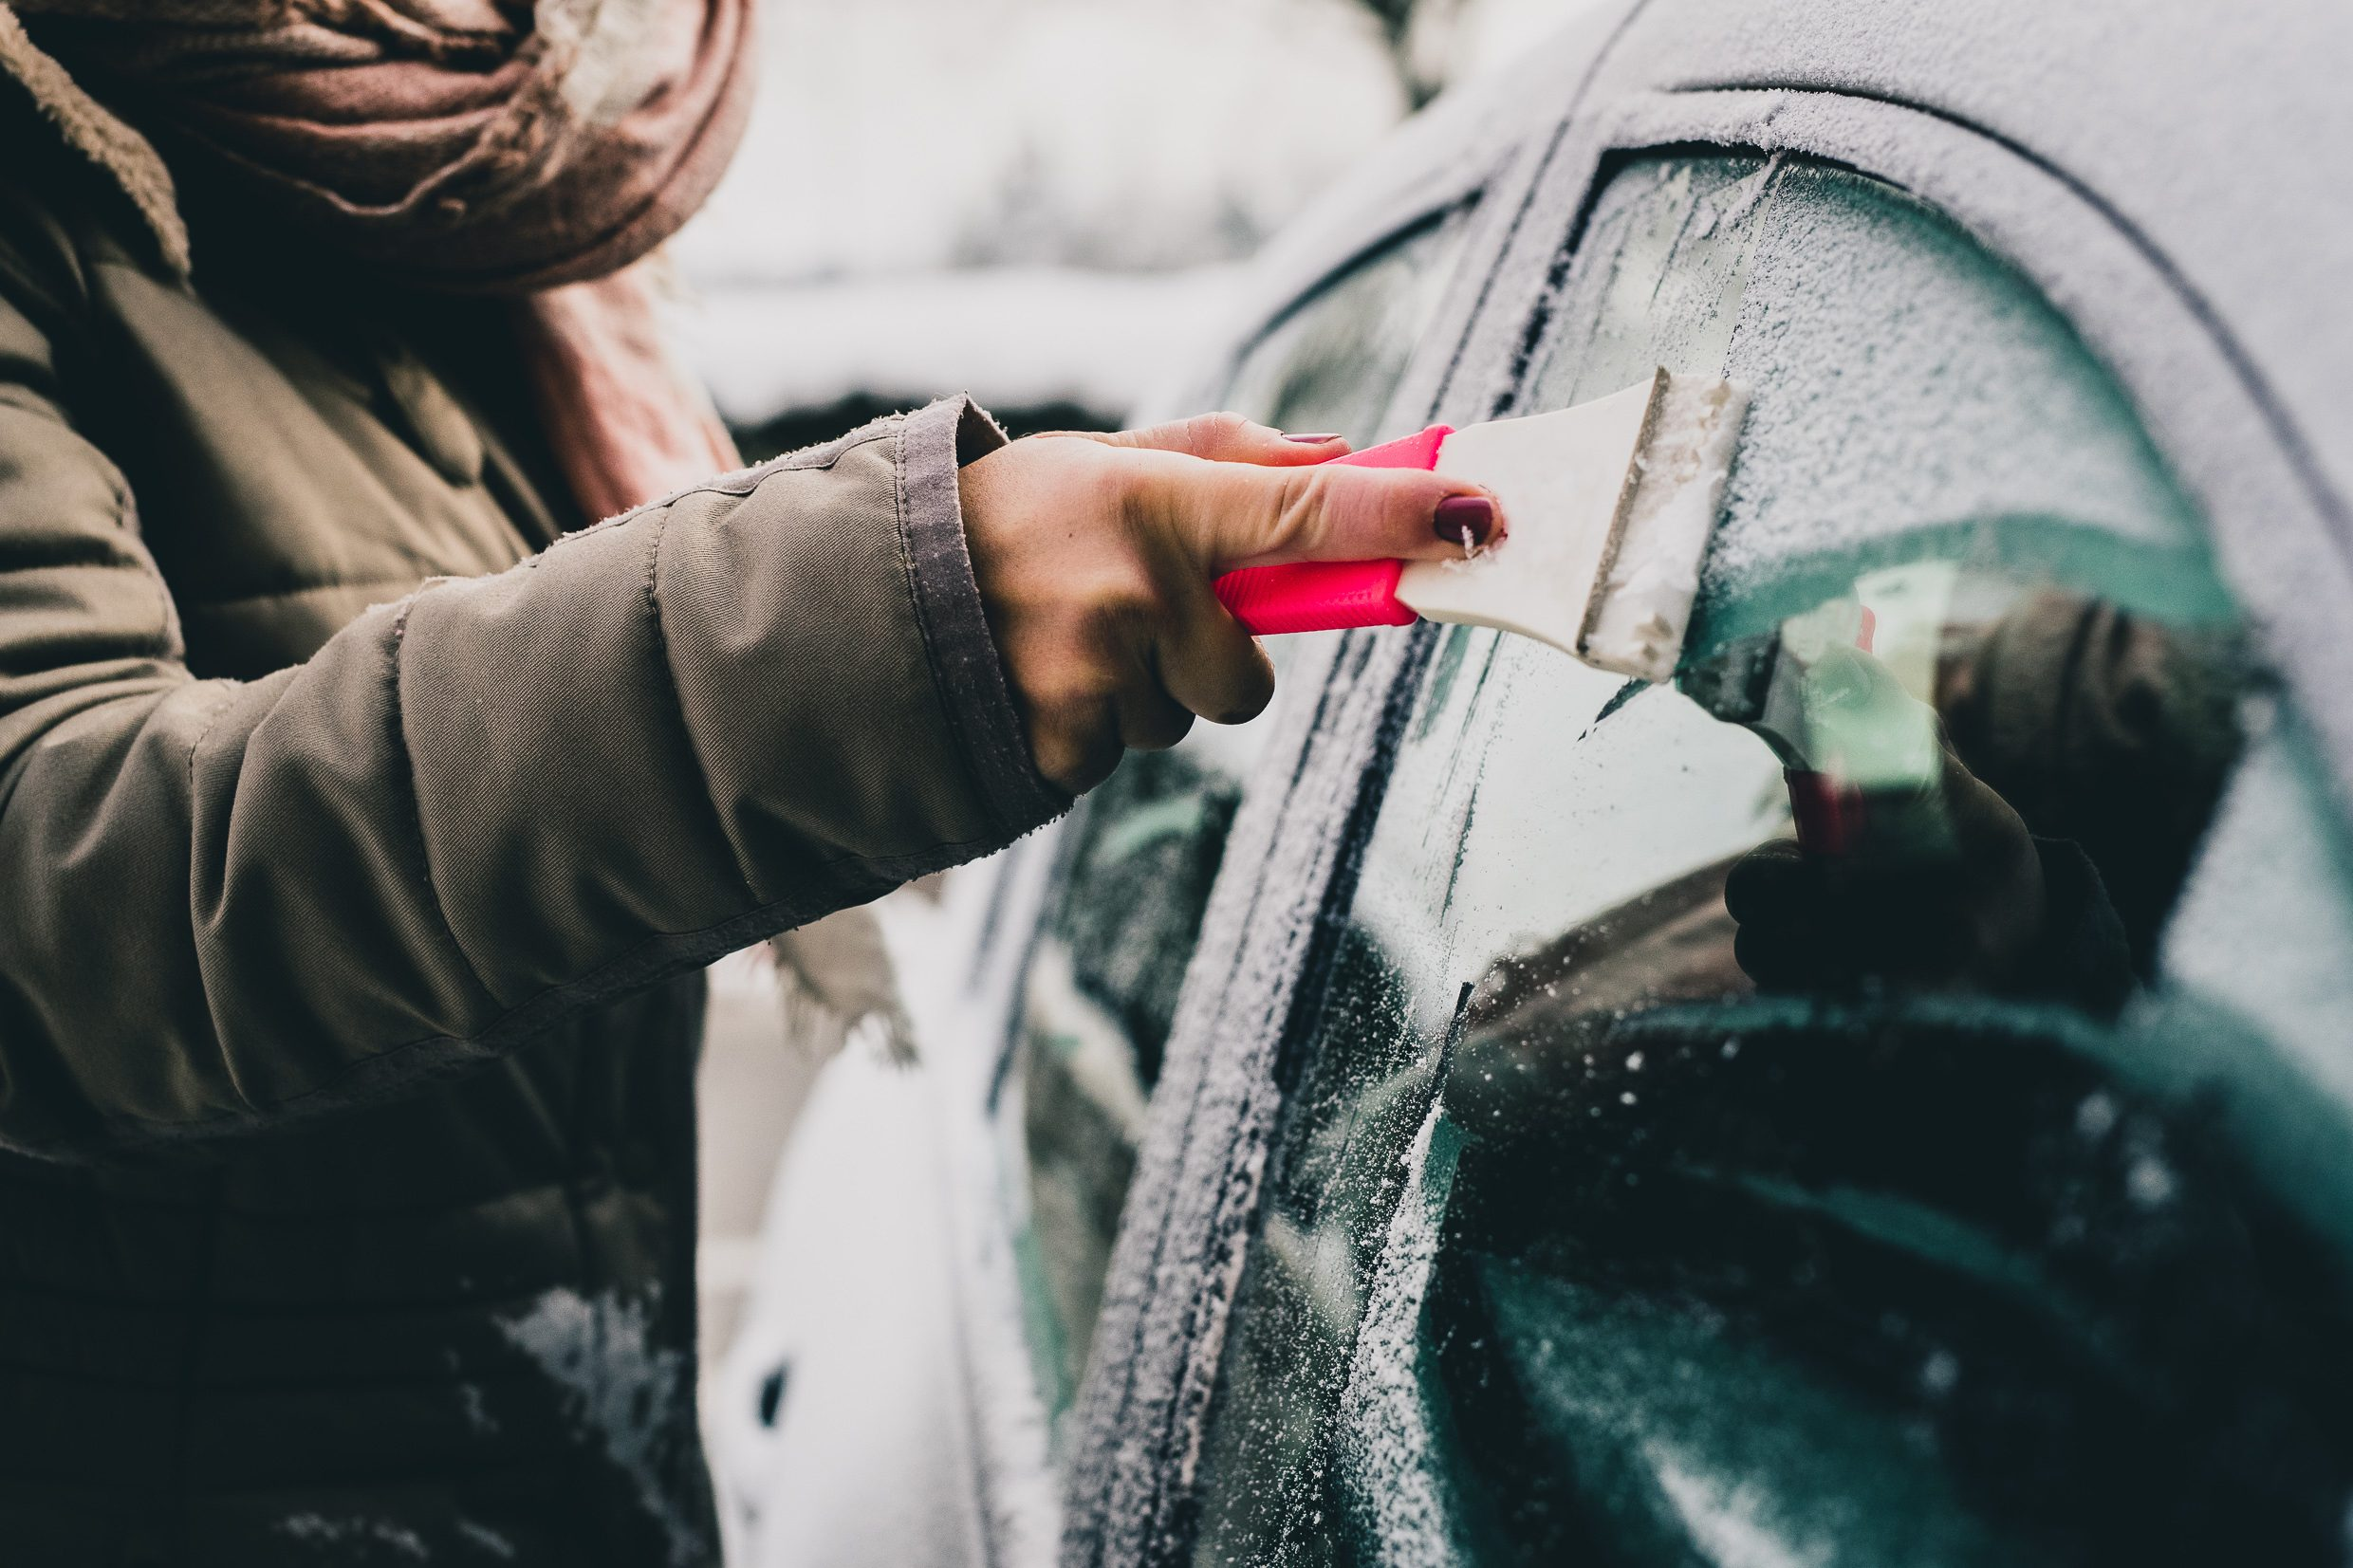 A woman is cleaning an icy window on a car with ice scraper. Focus on the ice scraper. Cold snowy and frosty morning.